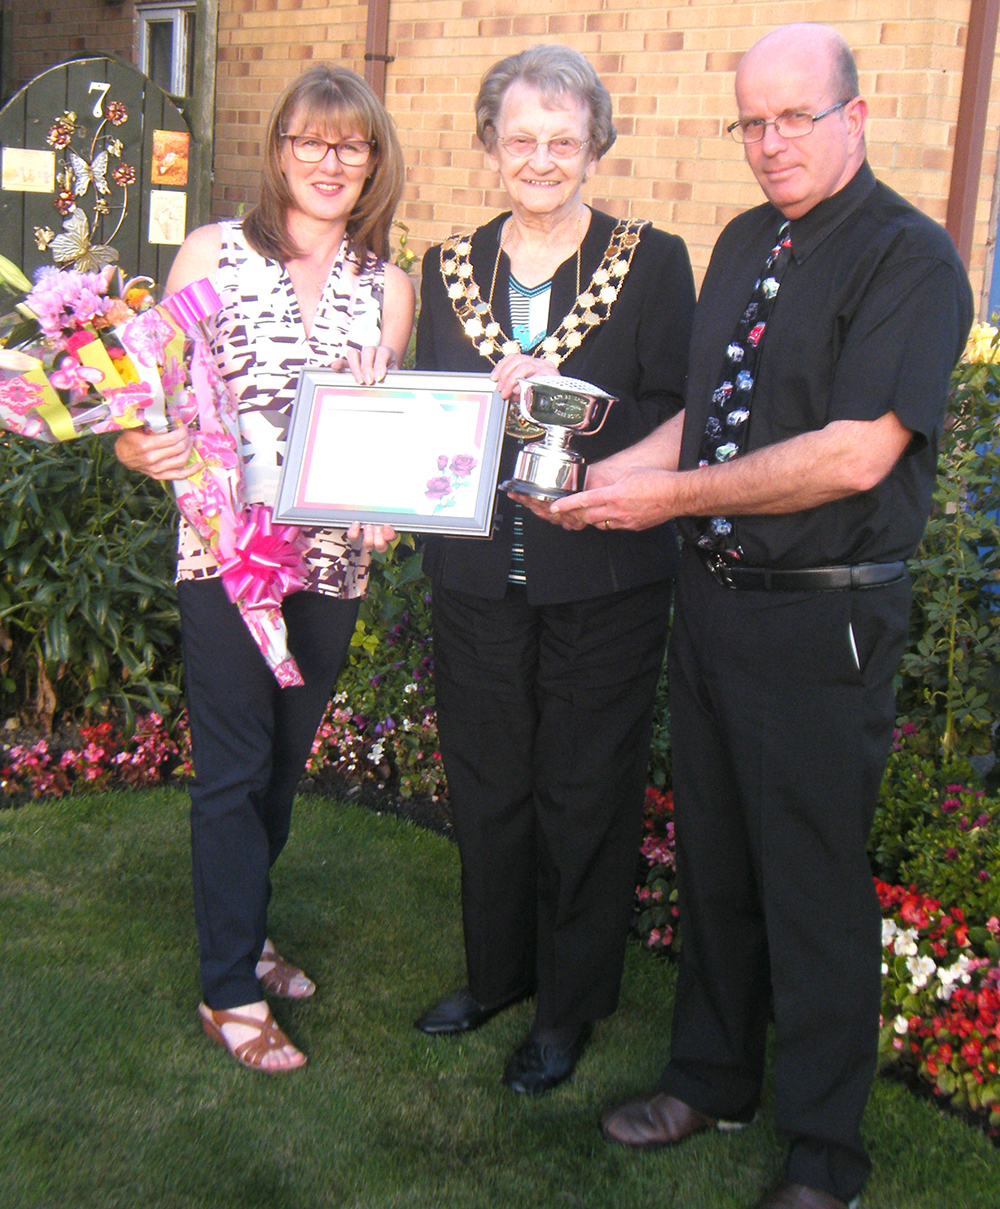 Aycliffe 2015 Garden Competition Winners